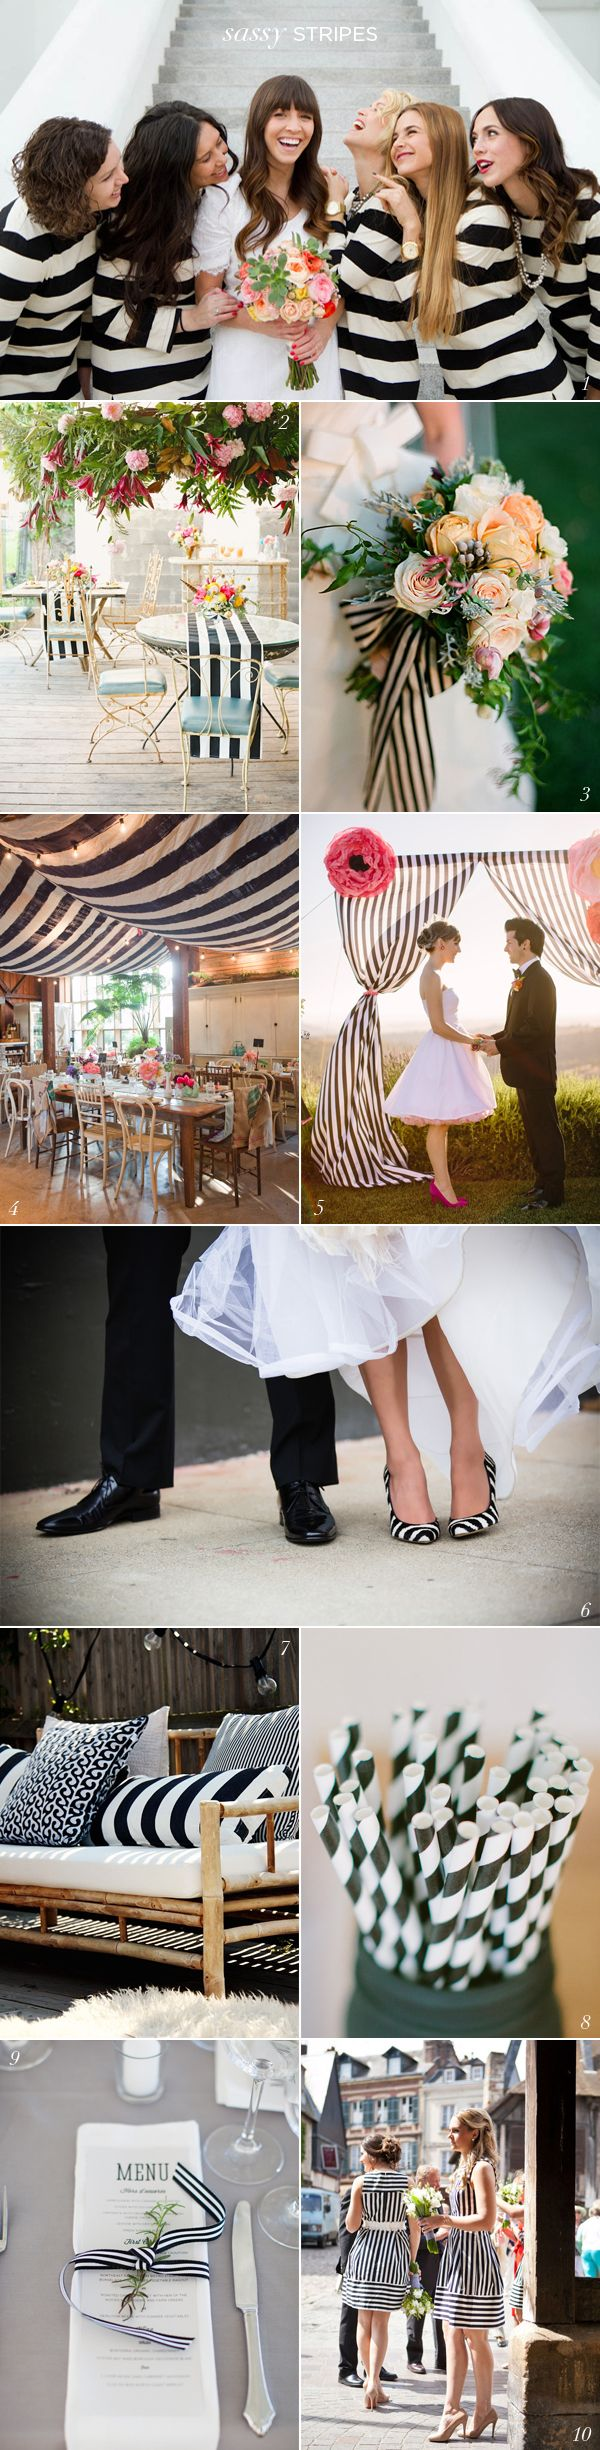 Black White Stripe Wedding Ideas EXCEPT I WOULD DO POLKA DOTS!!!!!!!!!!!!!!!!!!!!!!!!!!!